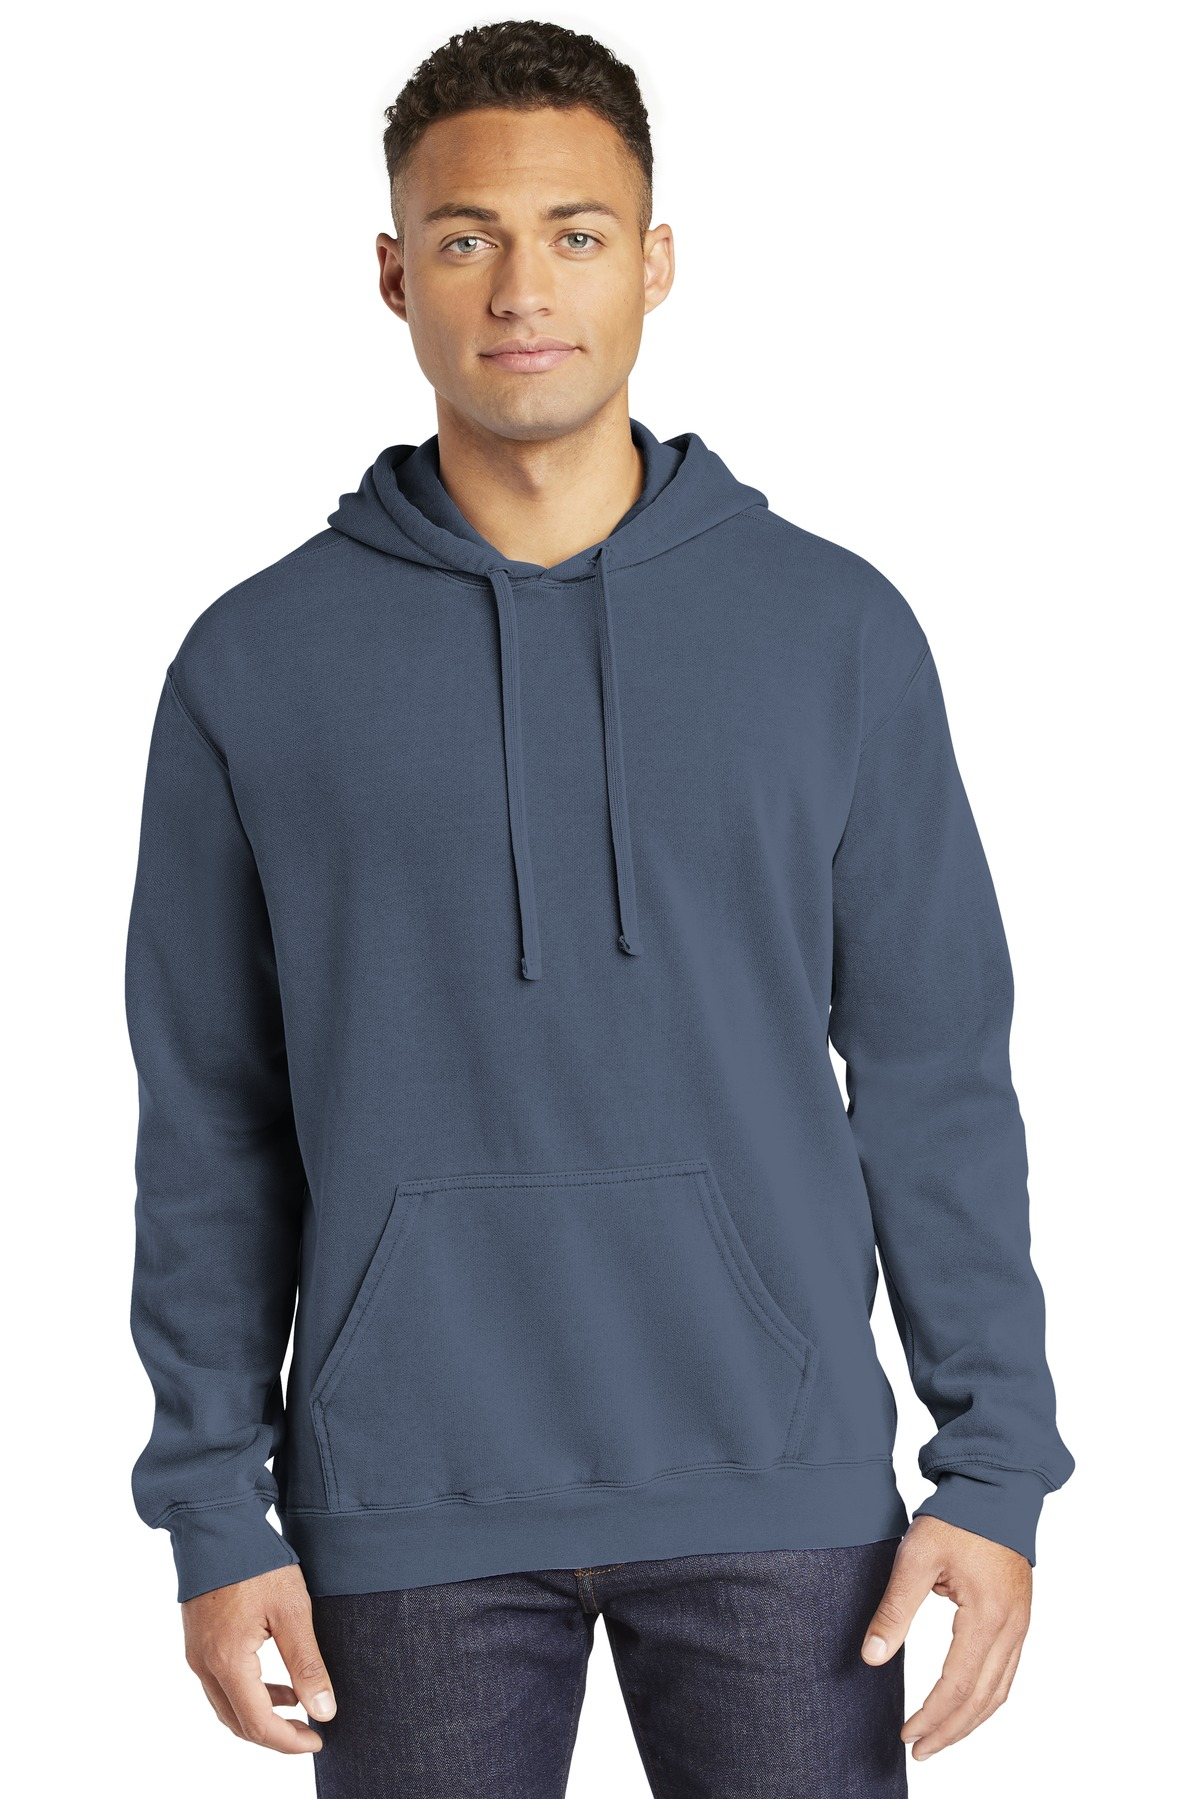 COMFORT COLORS  ®  Ring Spun Hooded Sweatshirt. 1567 - Blue Jean